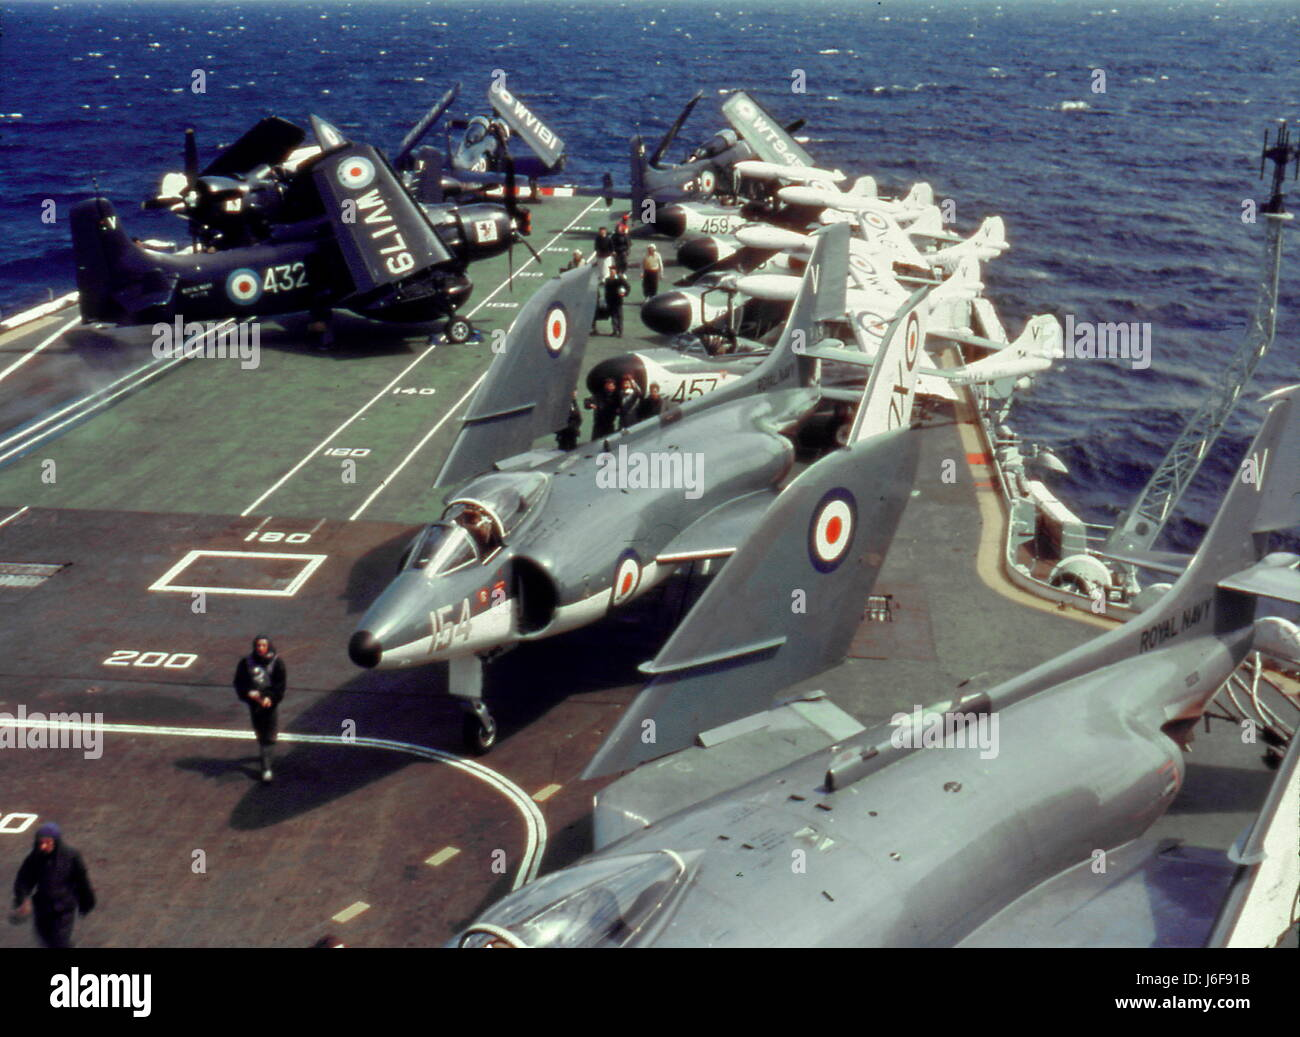 AJAXNETPHOTO. 1960S. AT SEA. - HMS VICTORIOUS. - FLIGHT DECK. CIRCA EARLY 1960S ship scrapped in 1969.  PHOTO:VIVStock Photo